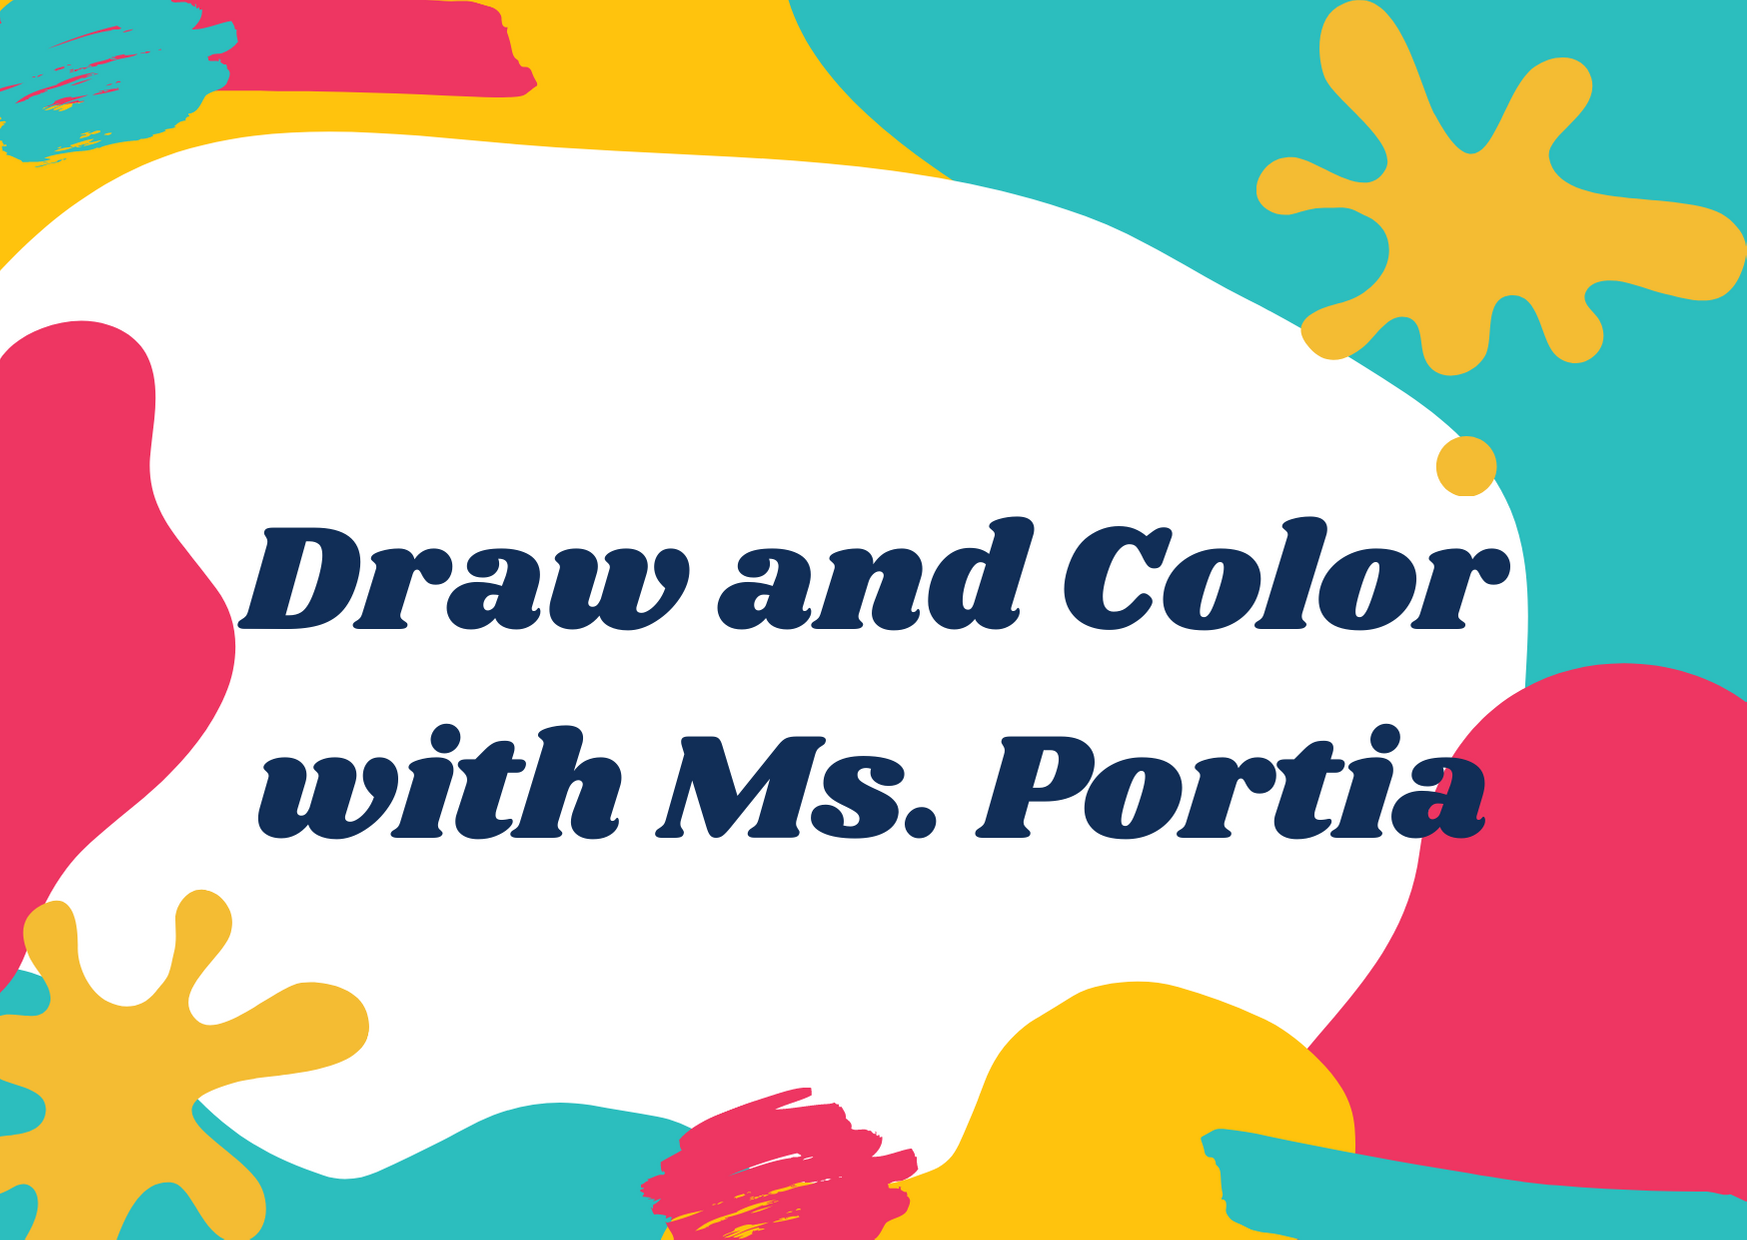 Drawing and Coloring with Ms. Portia